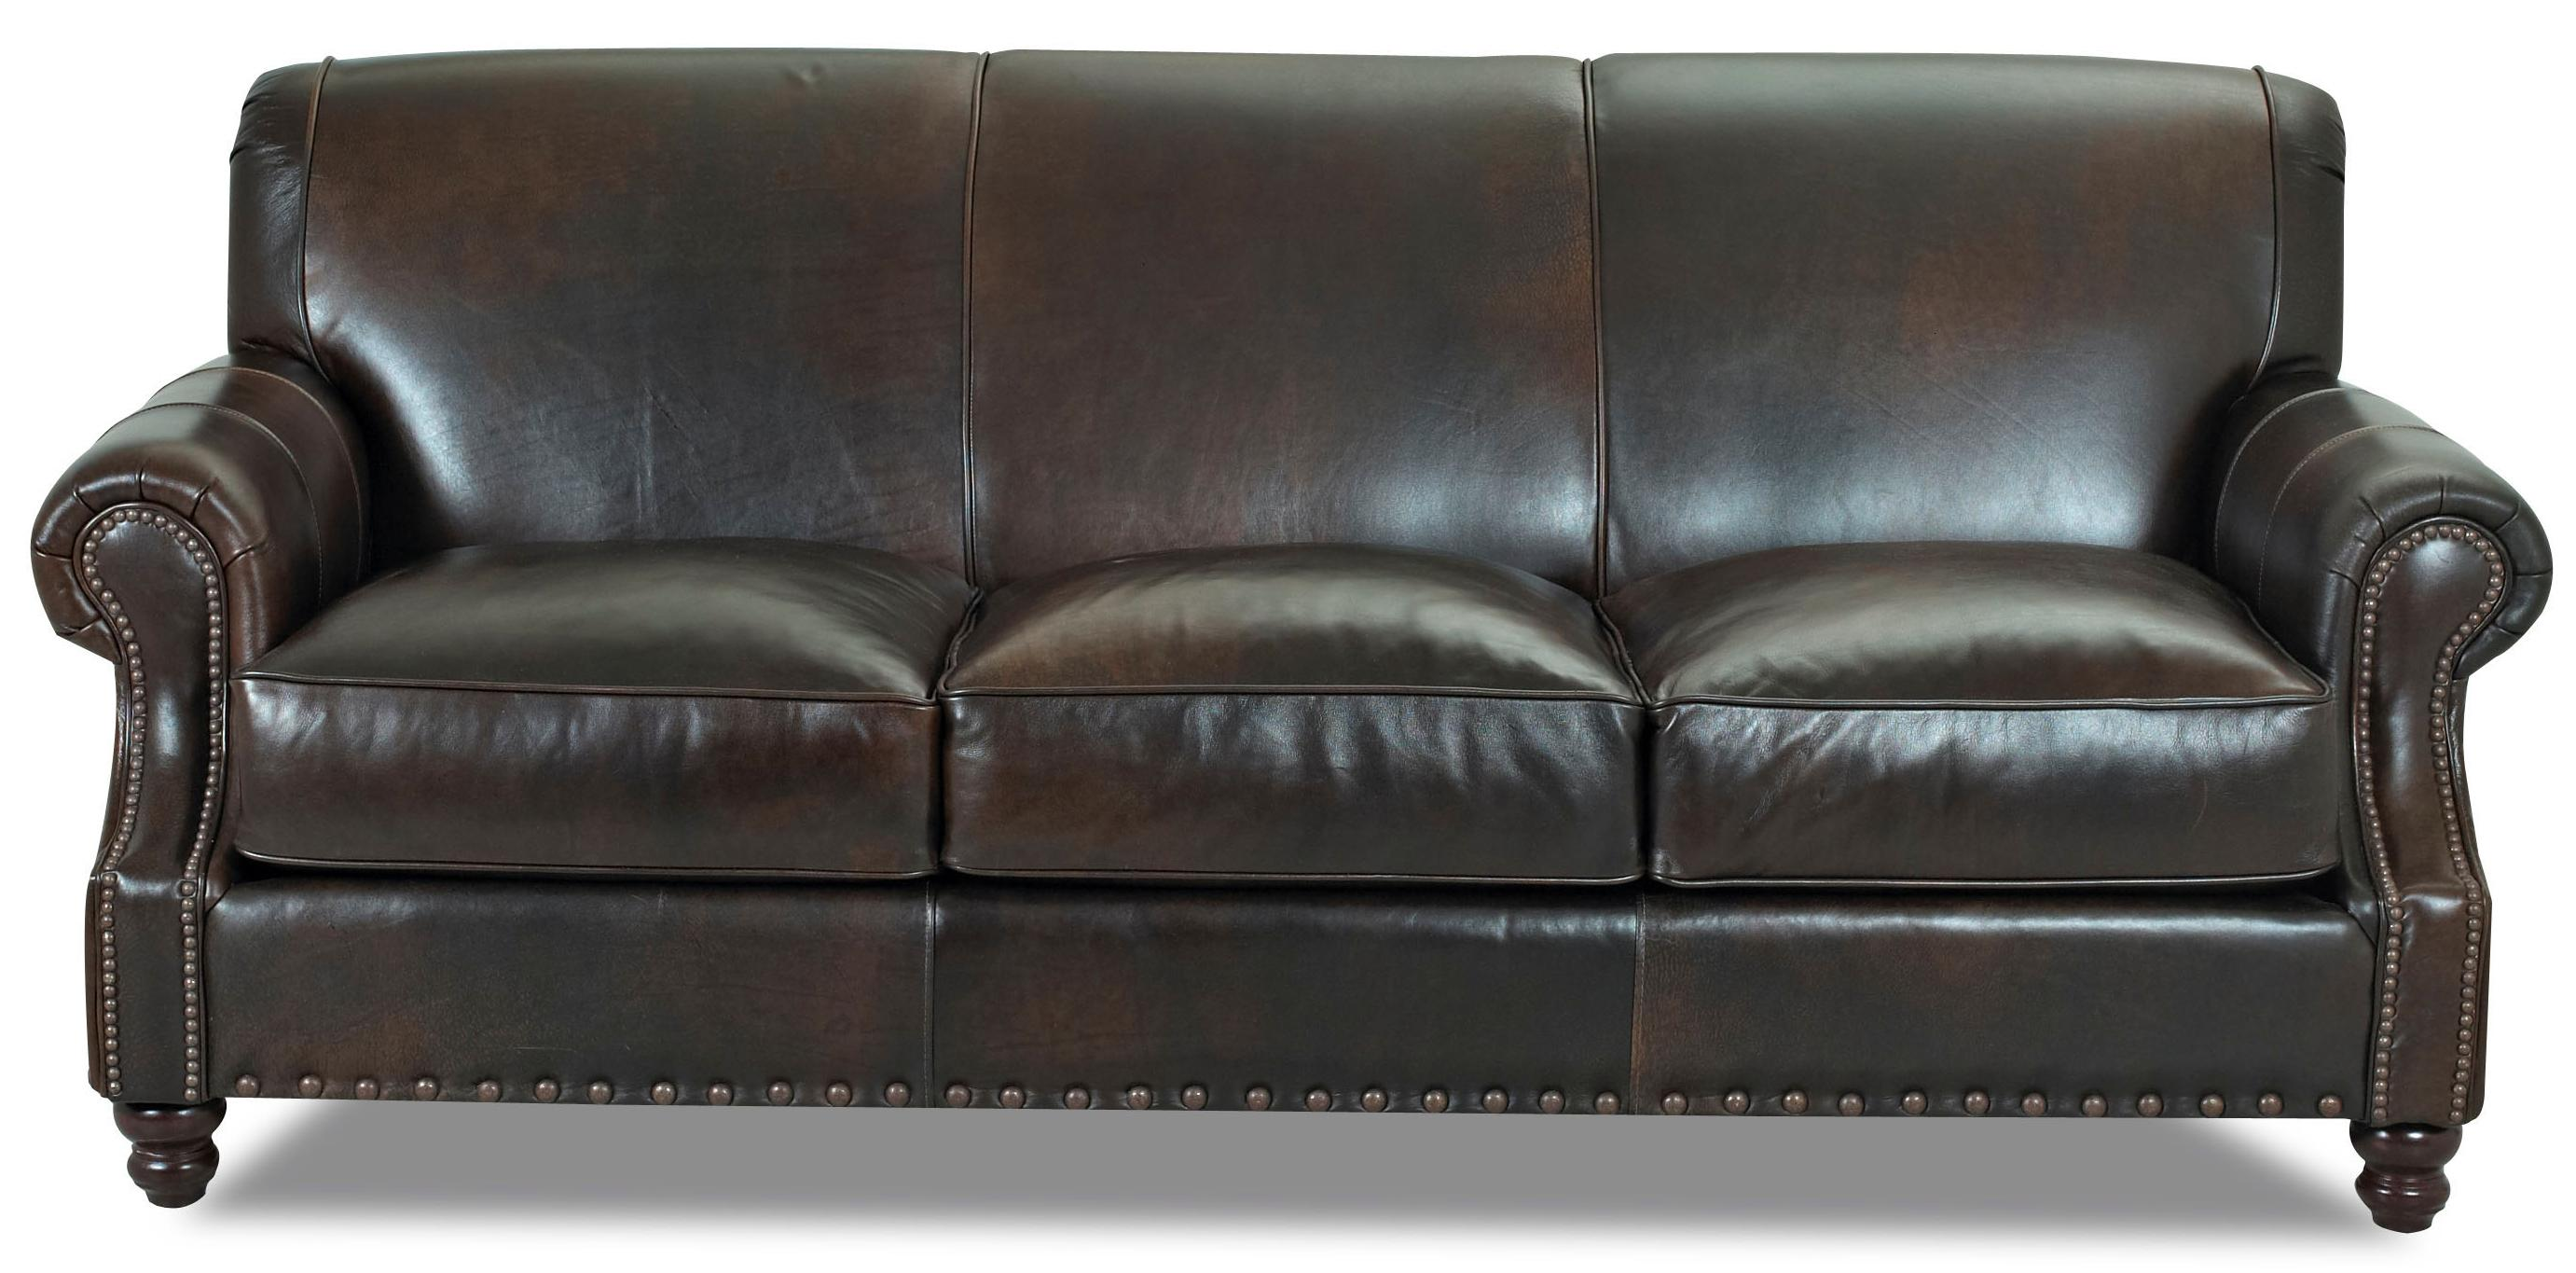 Klaussner fremont lt30410 s traditional leather stationary for Traditional sofas and loveseats